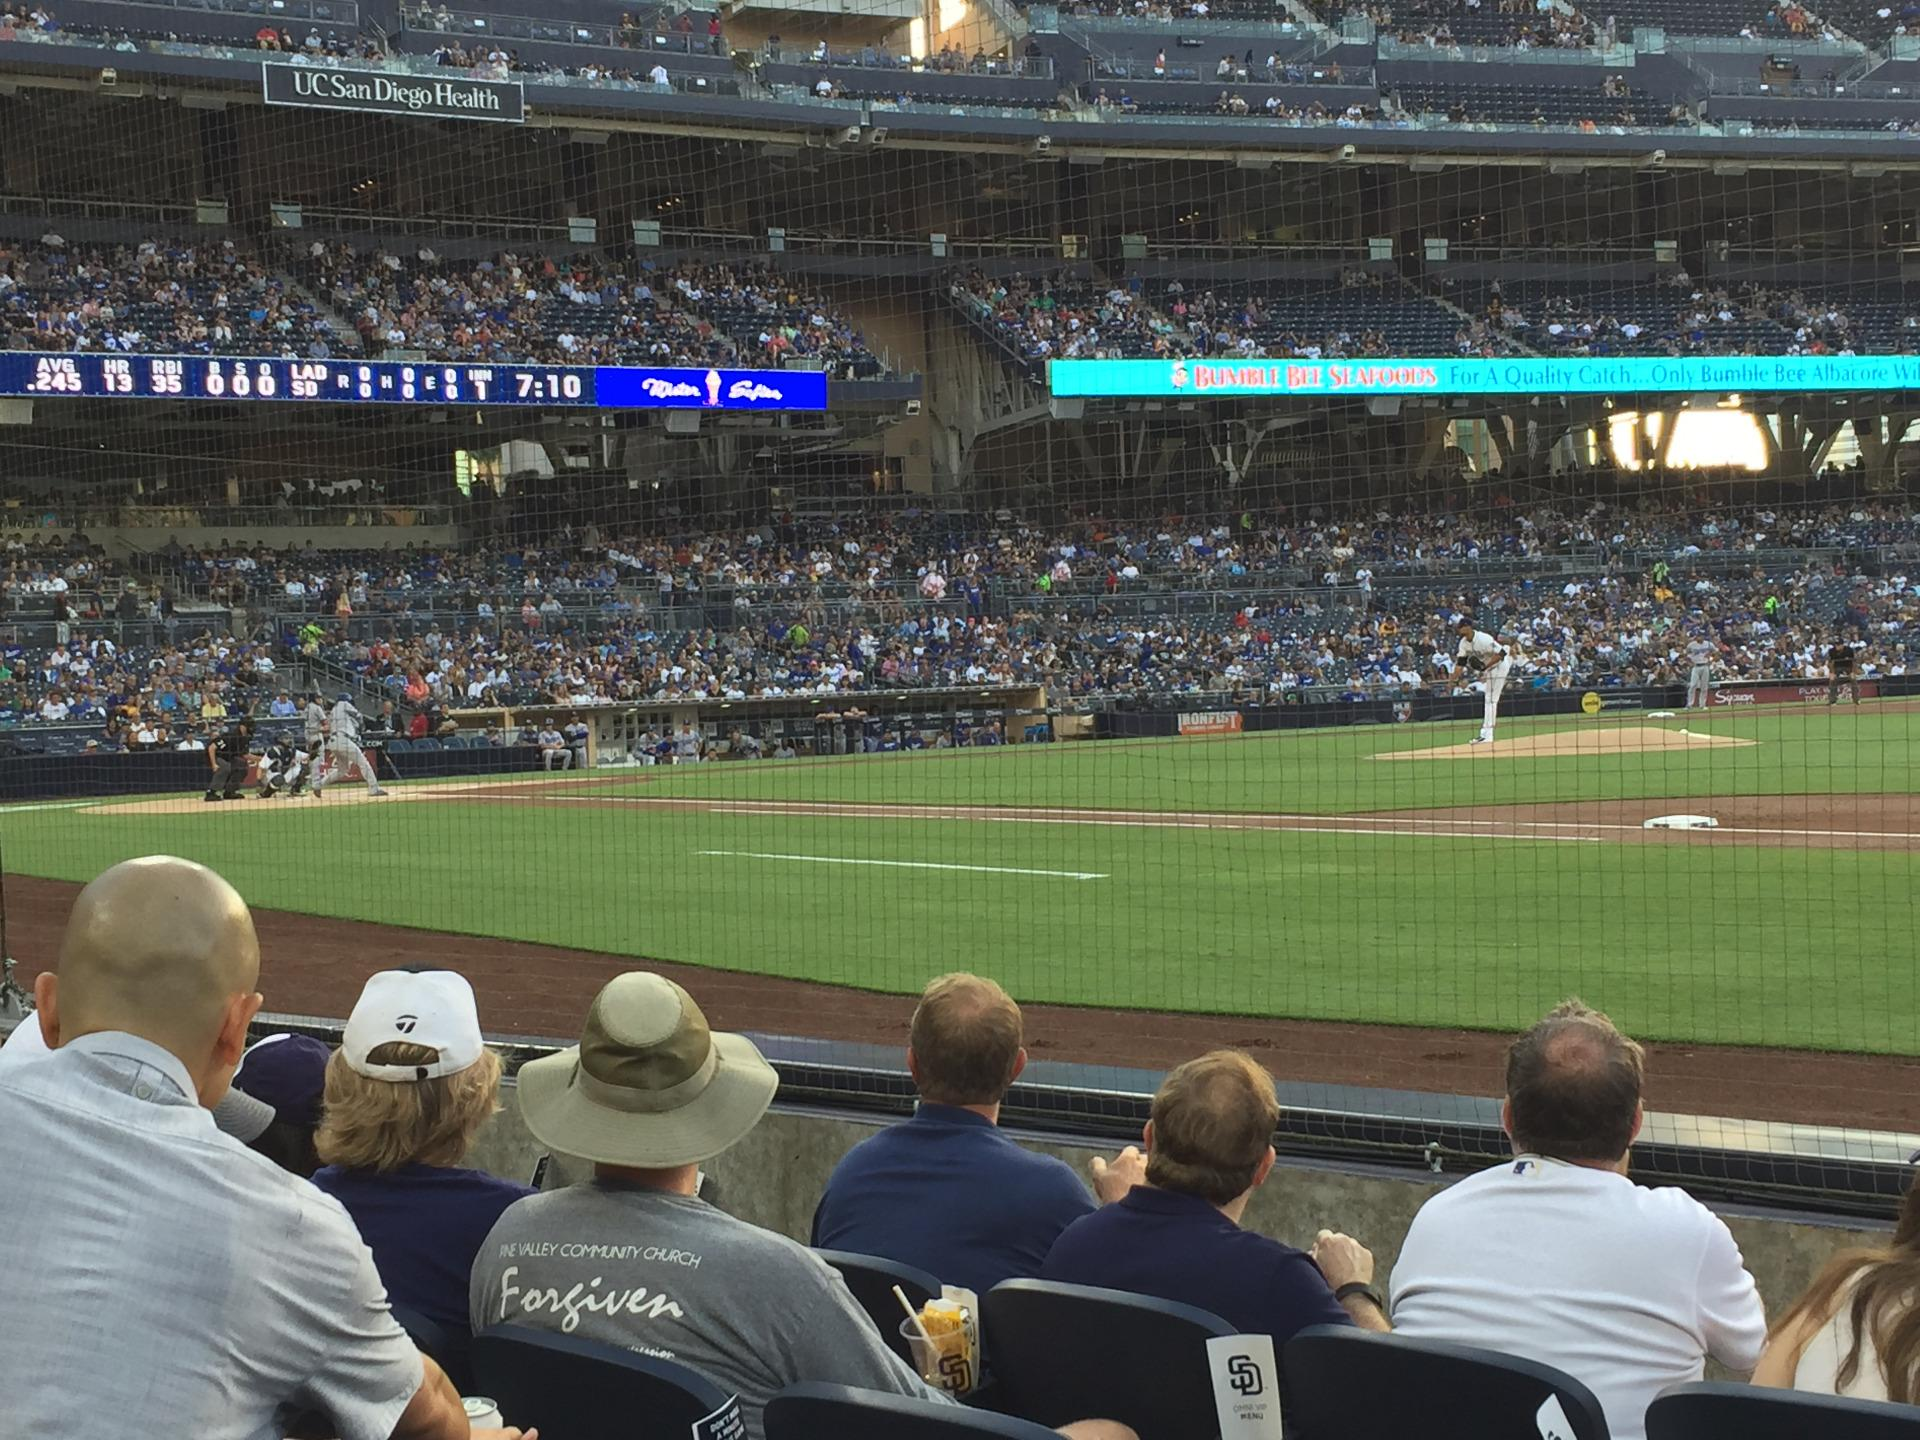 PETCO Park Section 113 Row 5 Seat 6